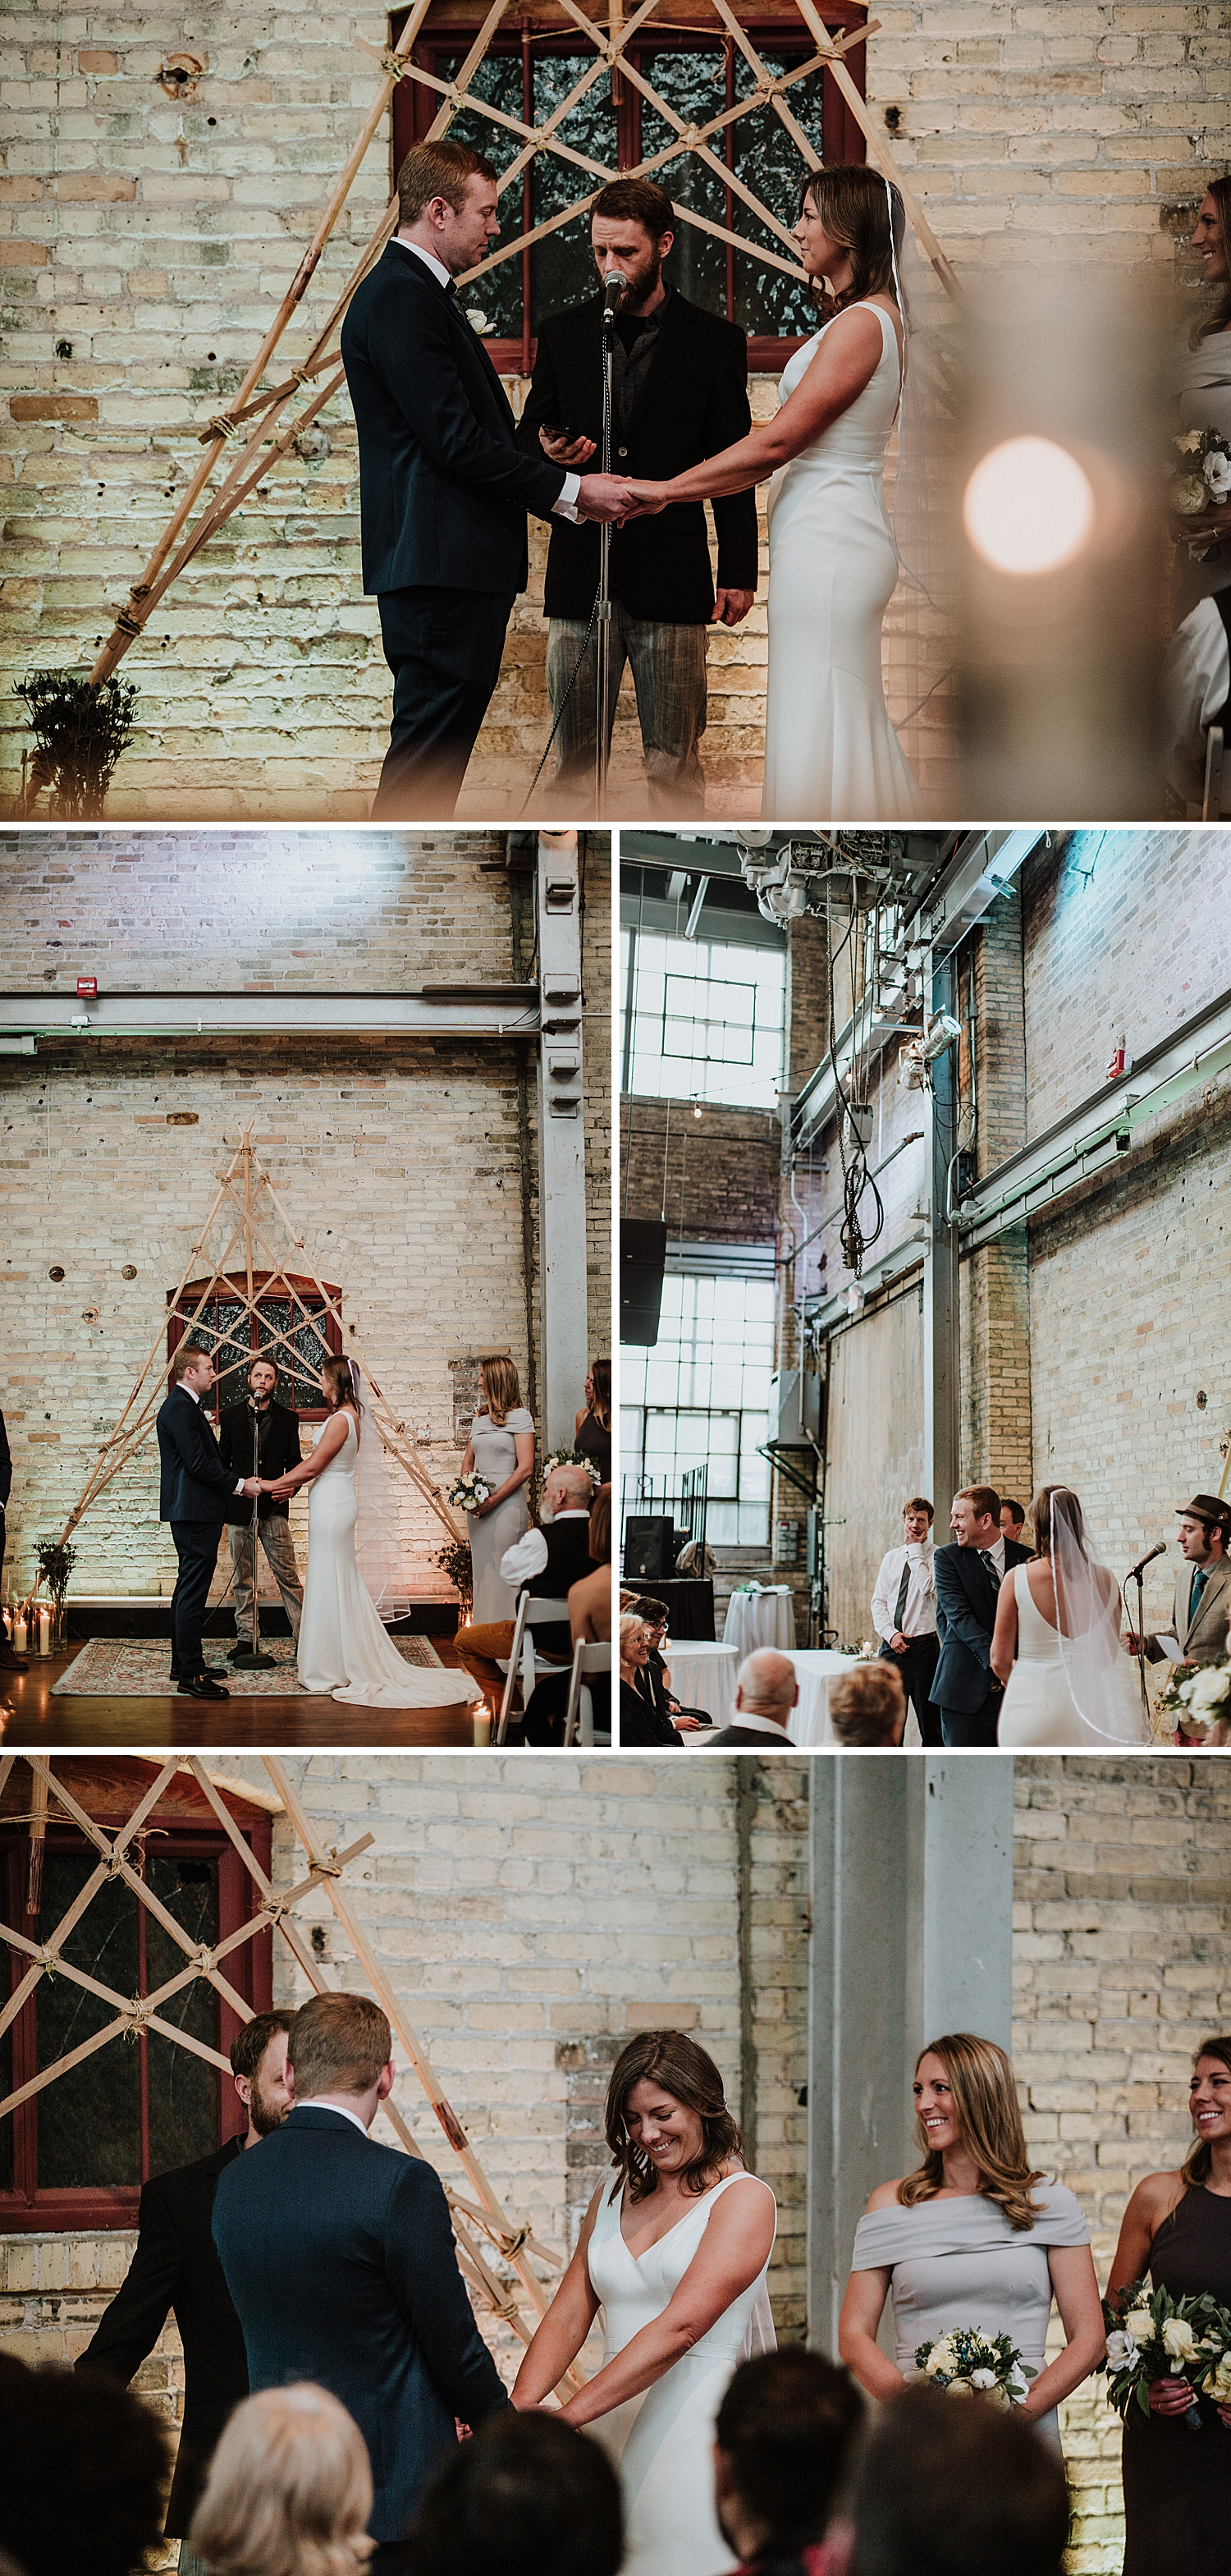 Cooperage-Wedding-Milwaukee_0026.jpg